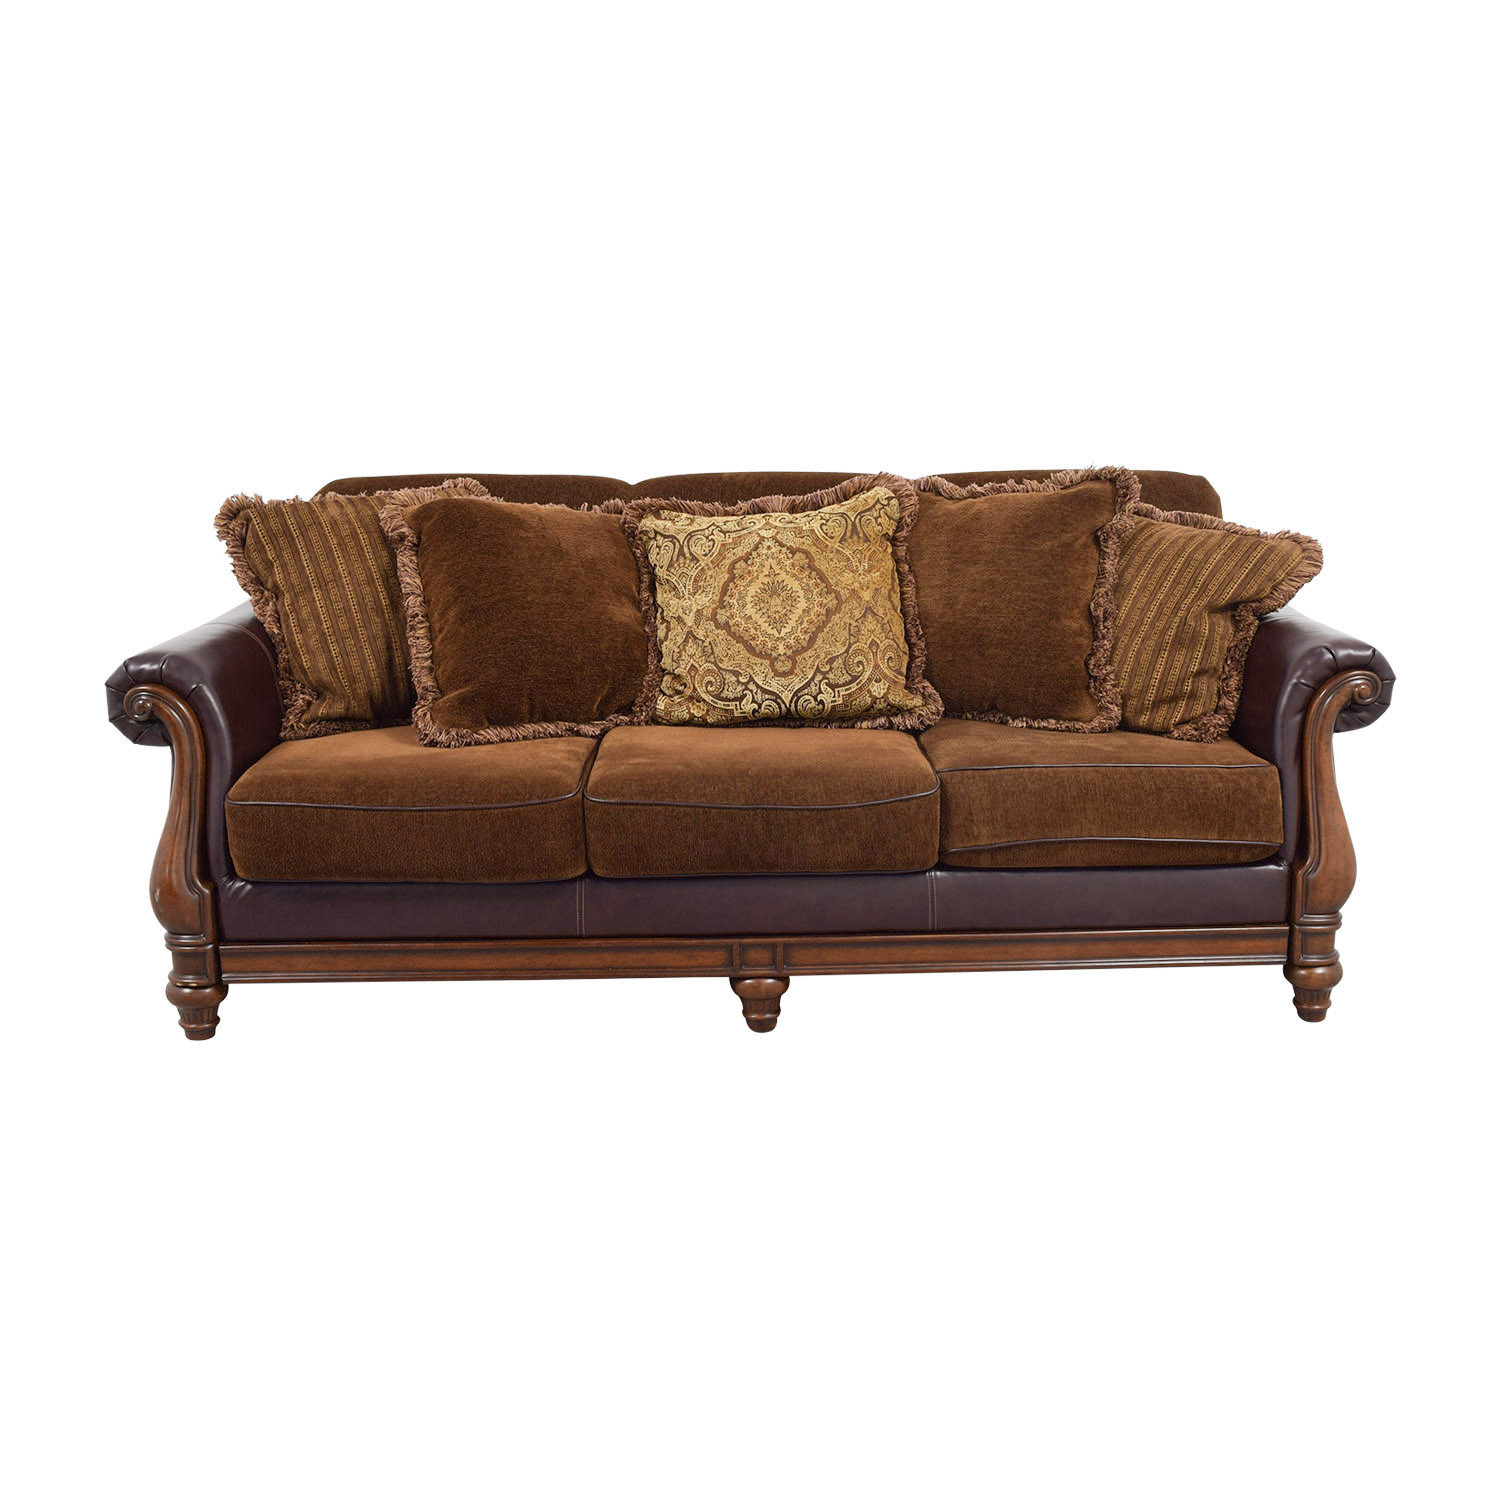 OFF Ashley Furniture Ashley Furniture Brown Mixed Fabric Deep